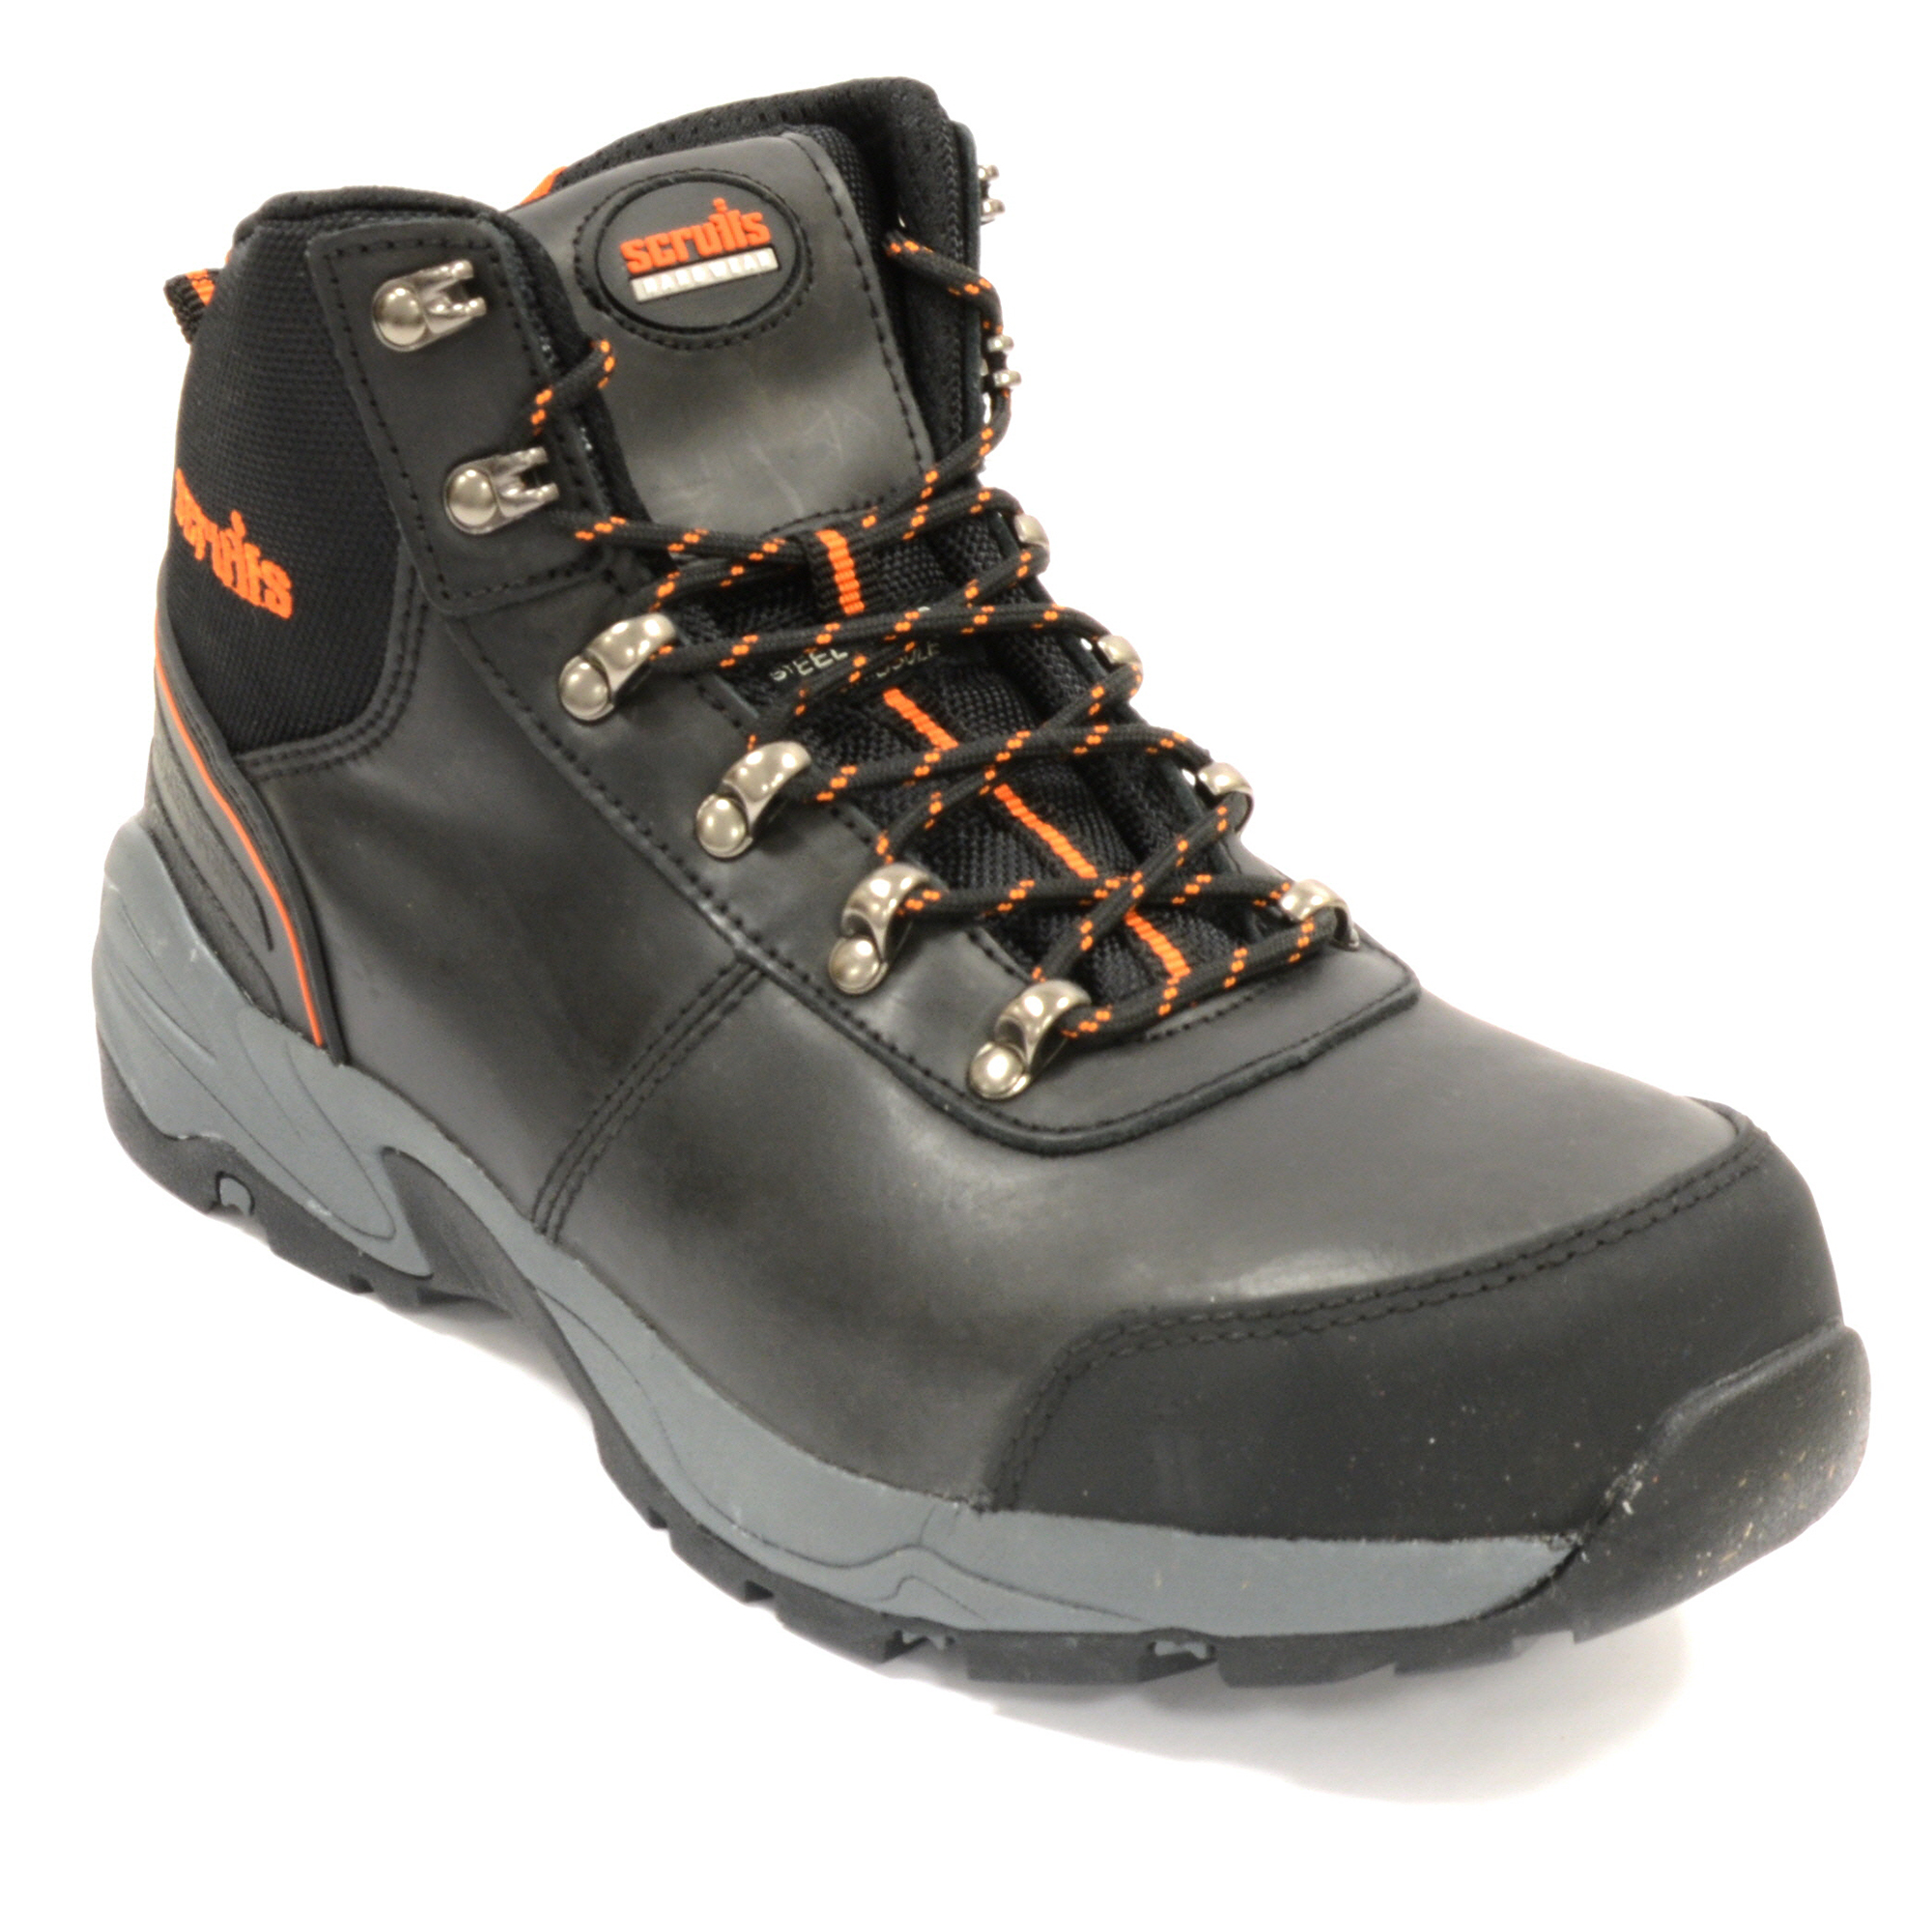 1277b0cab93 Scruffs,ASSAULTBK,Assault Safety Boot - Black